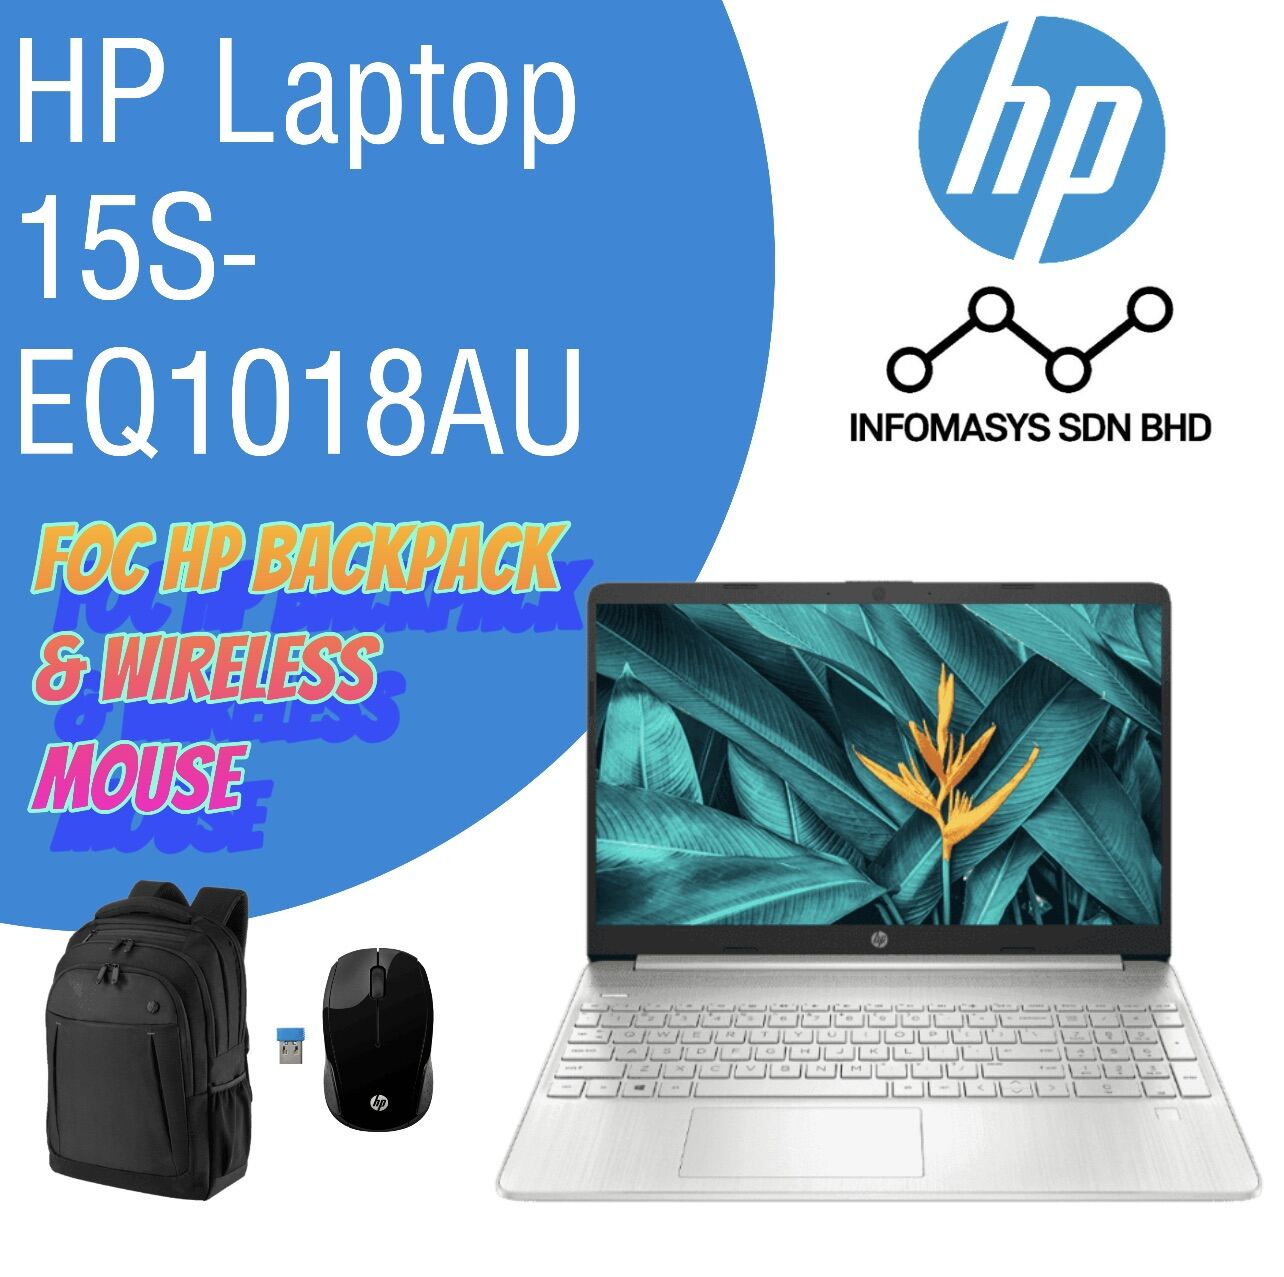 READY STOCK! HP Laptop 15s-eq1018AU (FREE HP BACKPACK & HP WIRELESS MOUSE) Malaysia